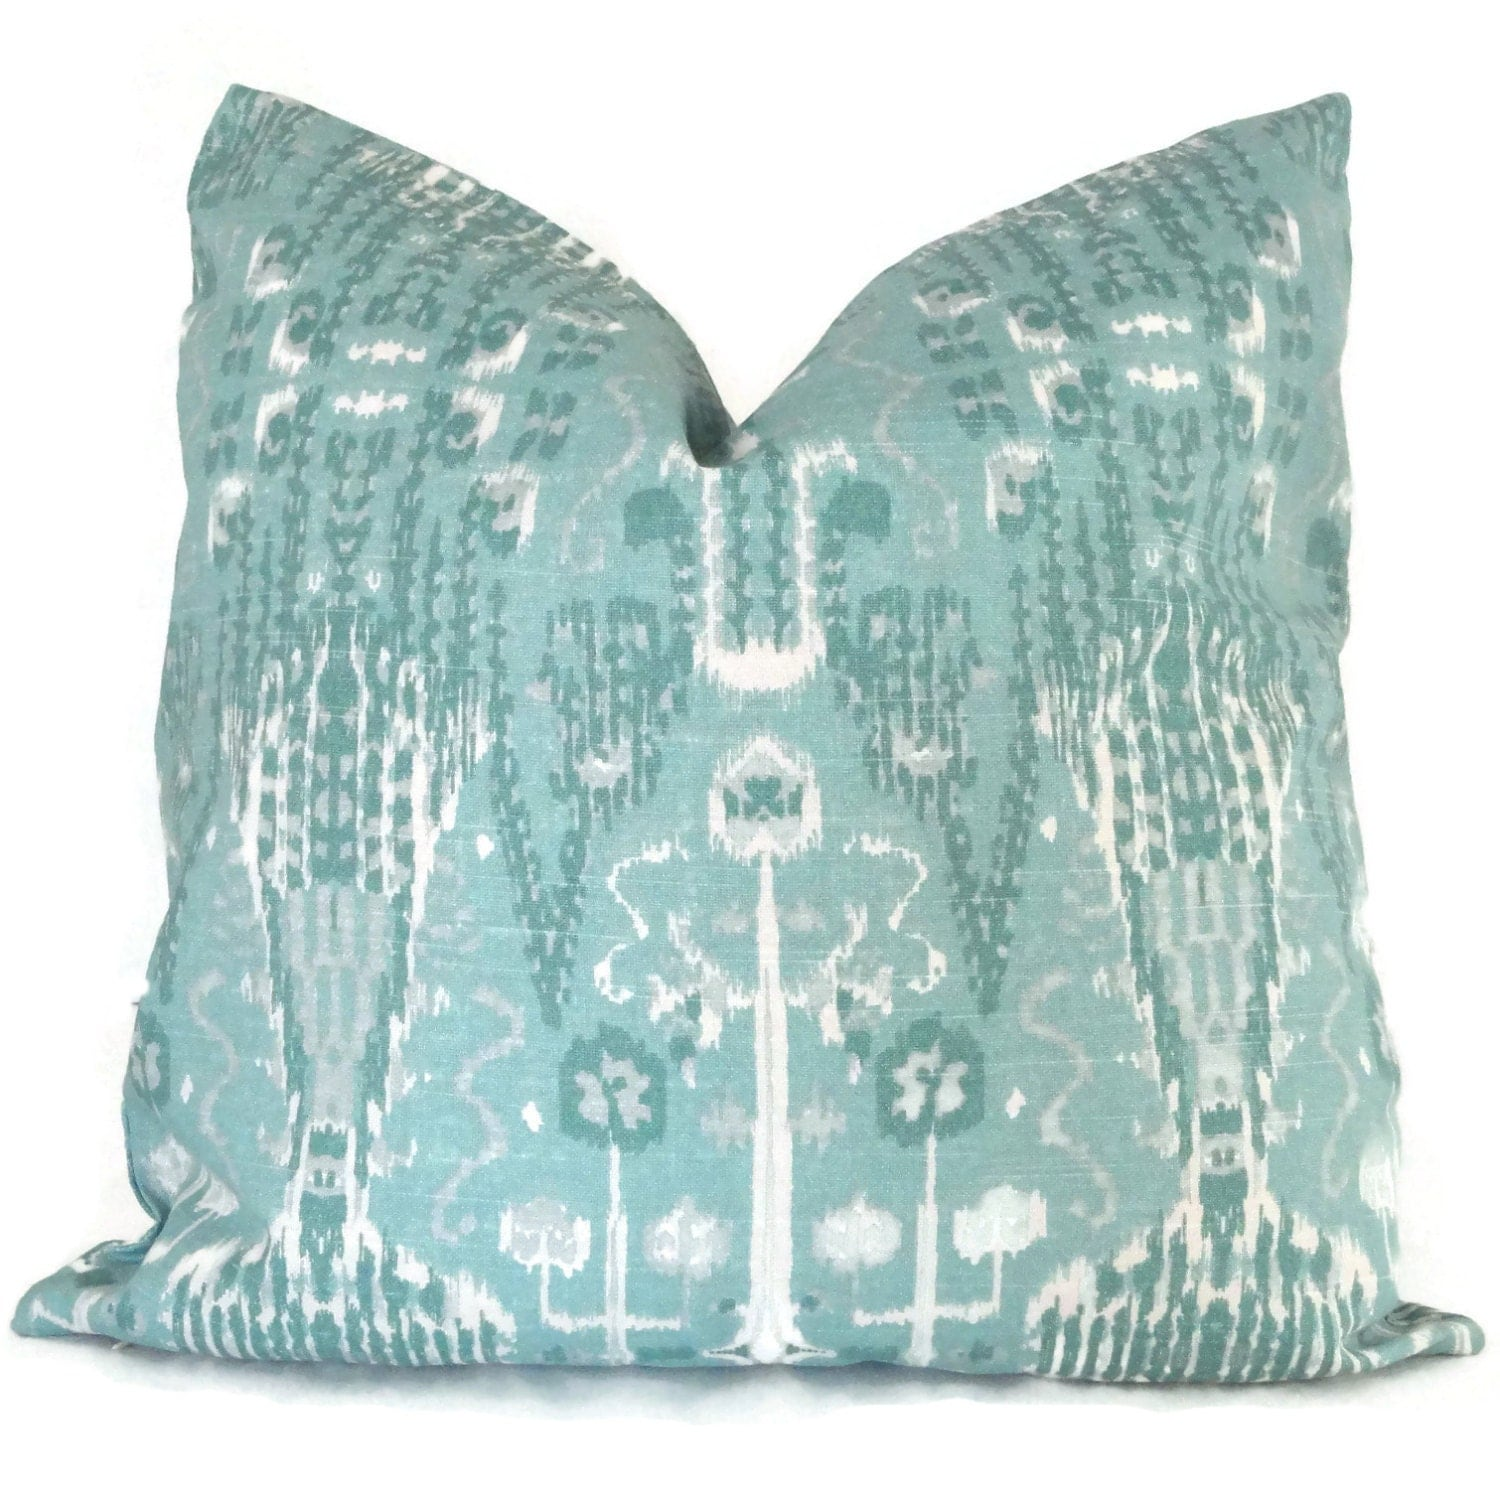 22x22 Throw Pillow Covers : Aqua Ikat Decorative Pillow Cover 18x18 20x20 22x22 or